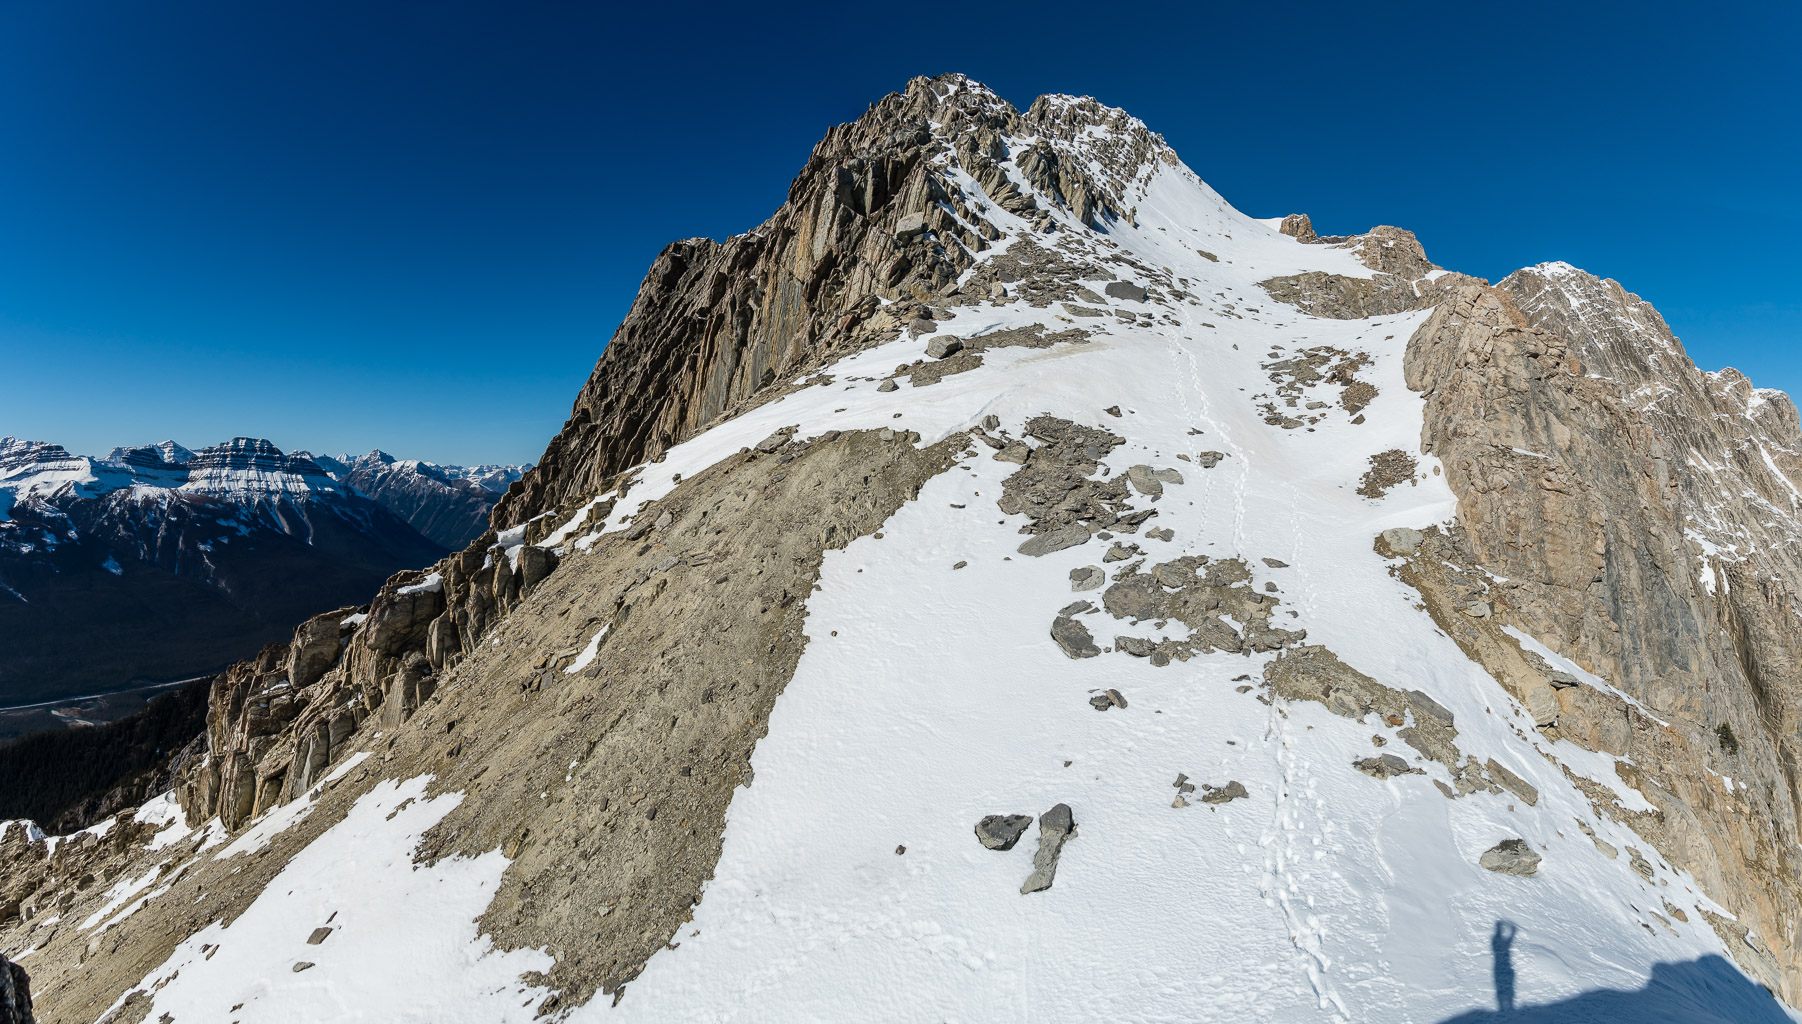 From on top of the small rock wall looking to the false summit.